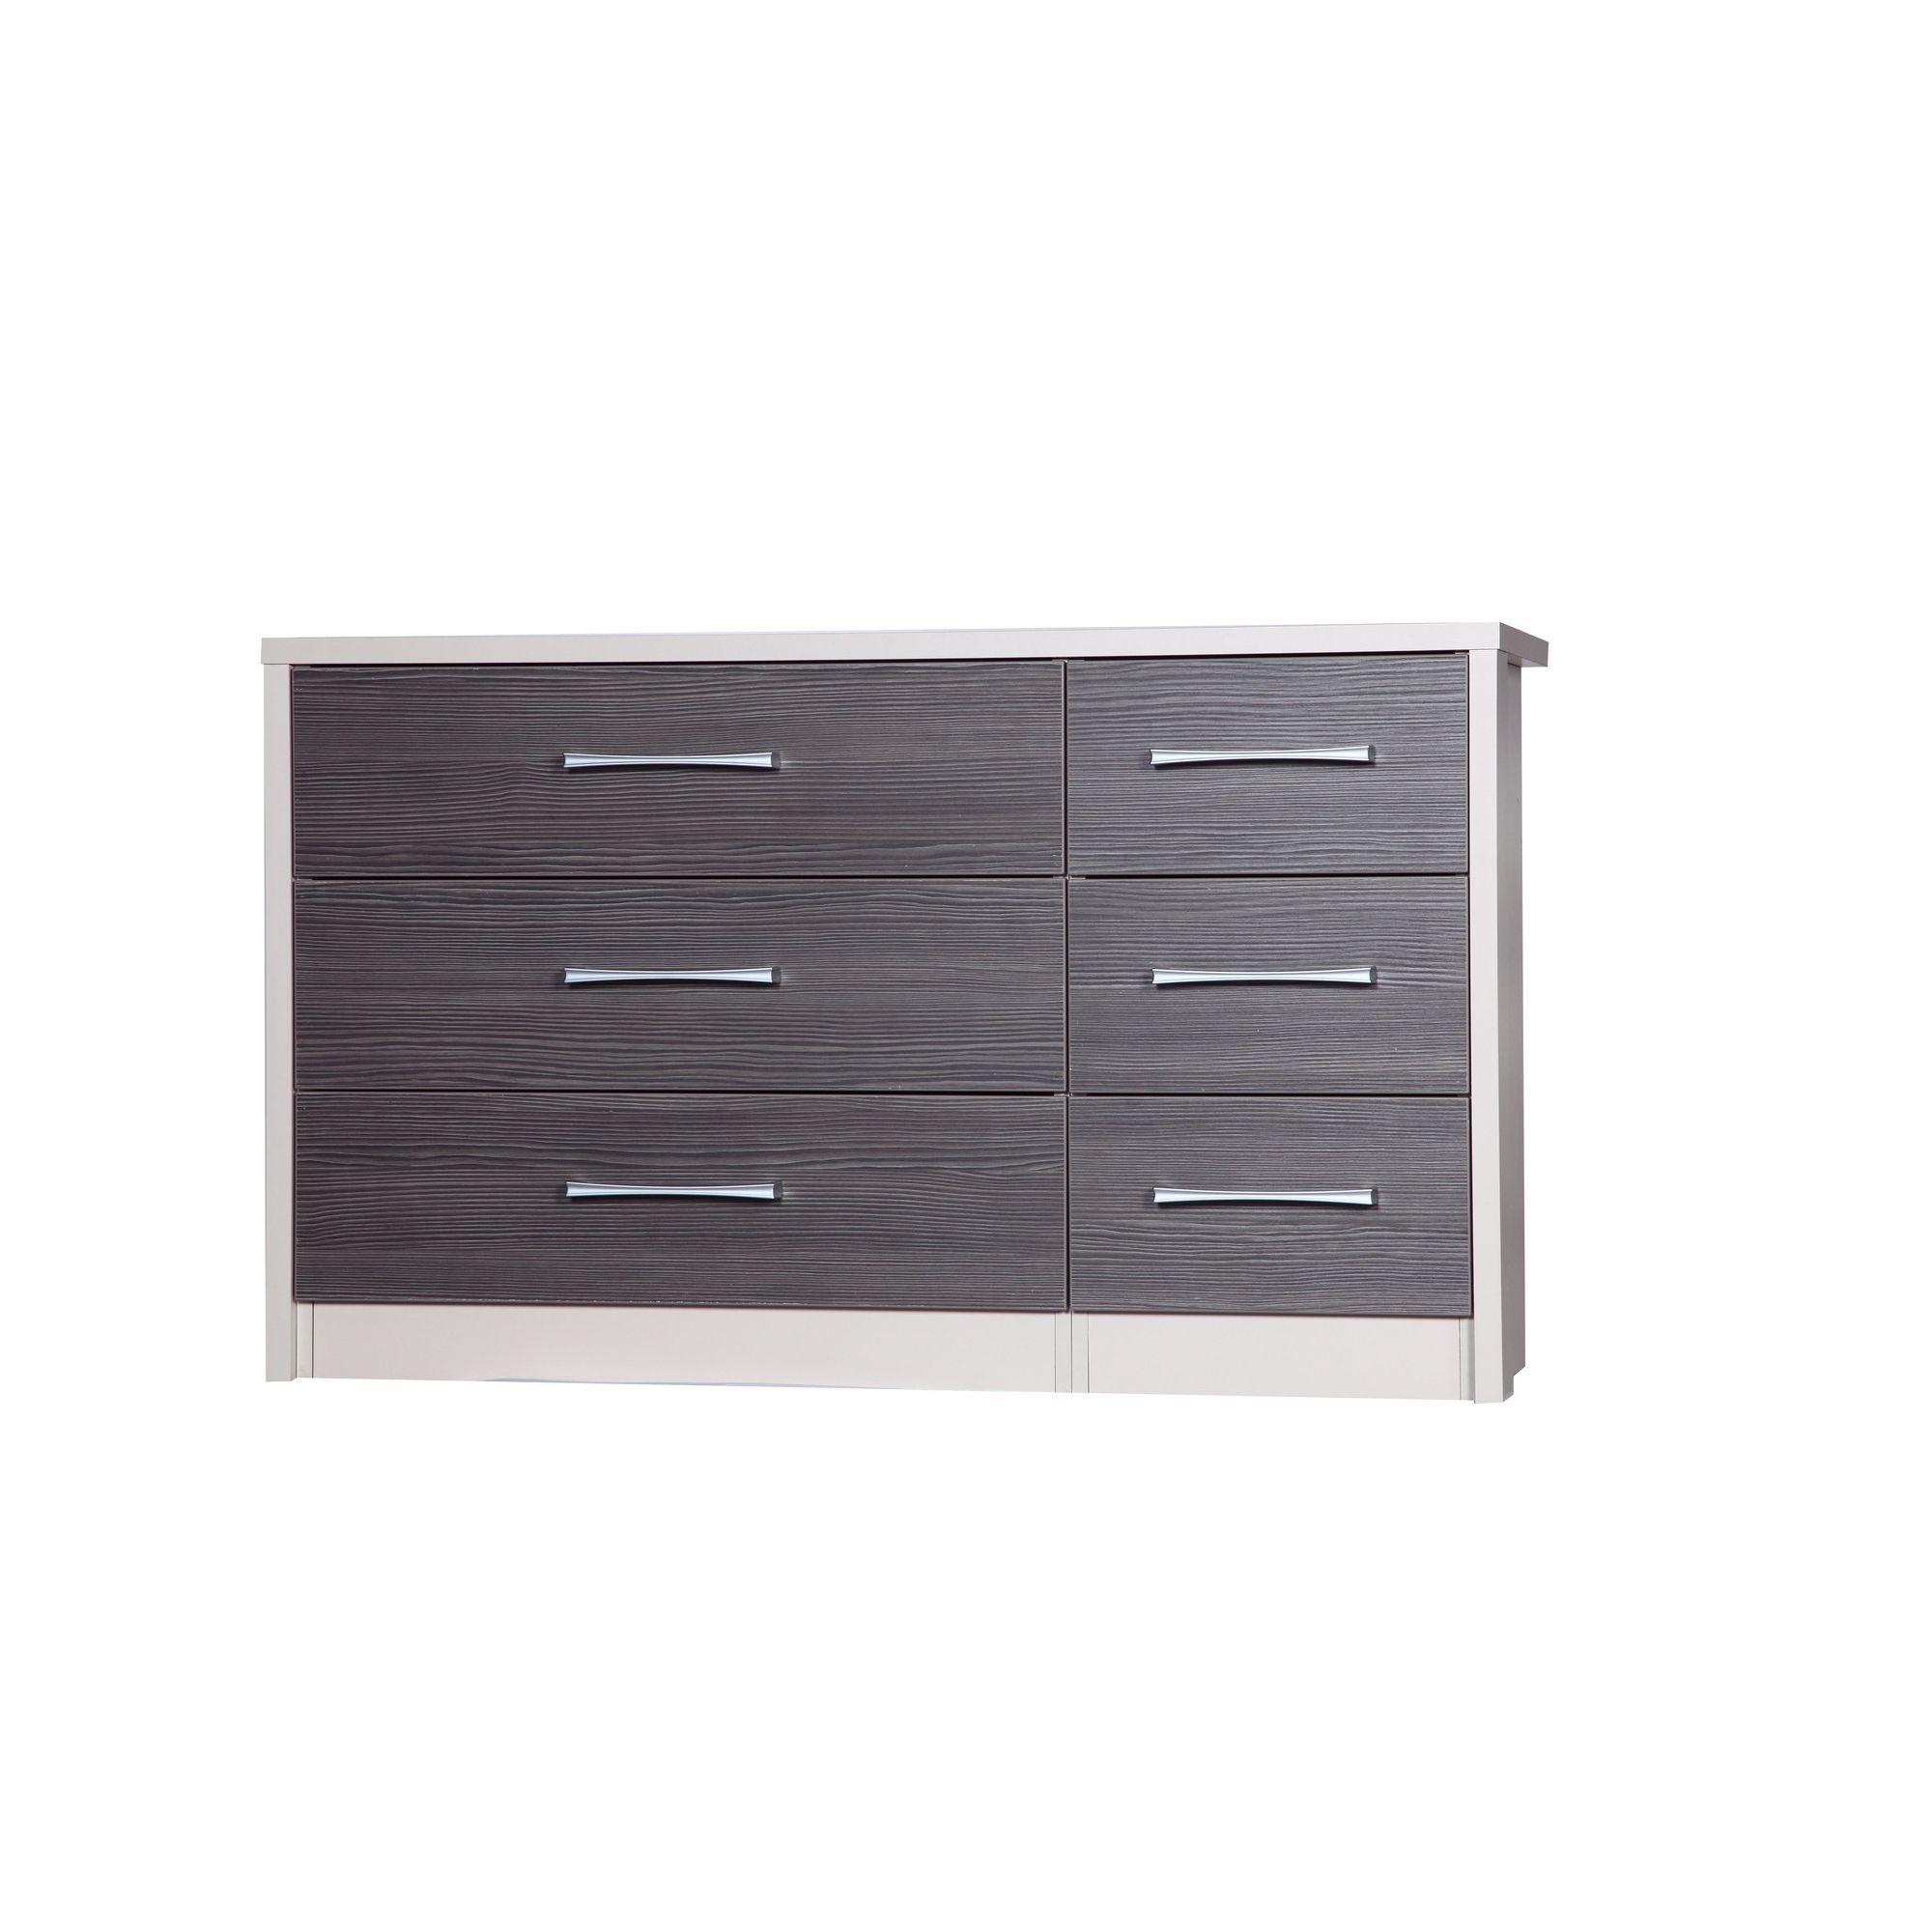 Alto Furniture Avola 6 Drawer Double Chest - Cream Carcass With Grey Avola at Tesco Direct